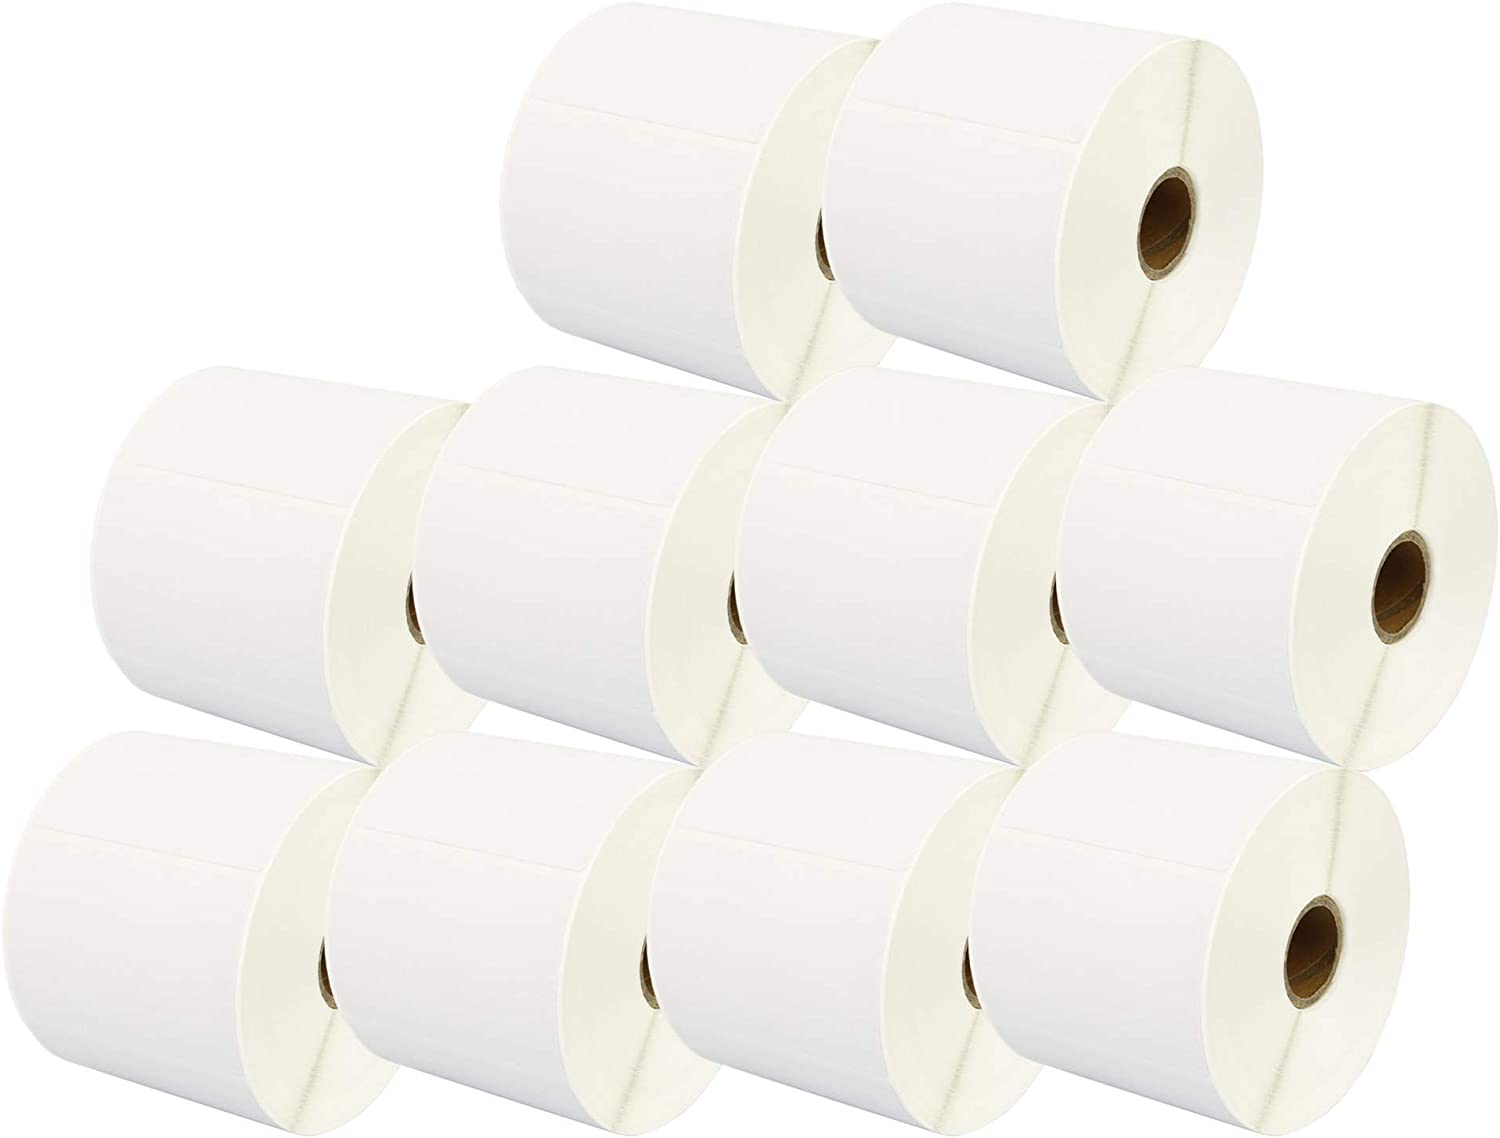 1000 Labels per Roll for Zebra Type Printers 5,000 Compatible Zebra 76mm x 51mm White Direct Thermal Labels FIVE ROLLS